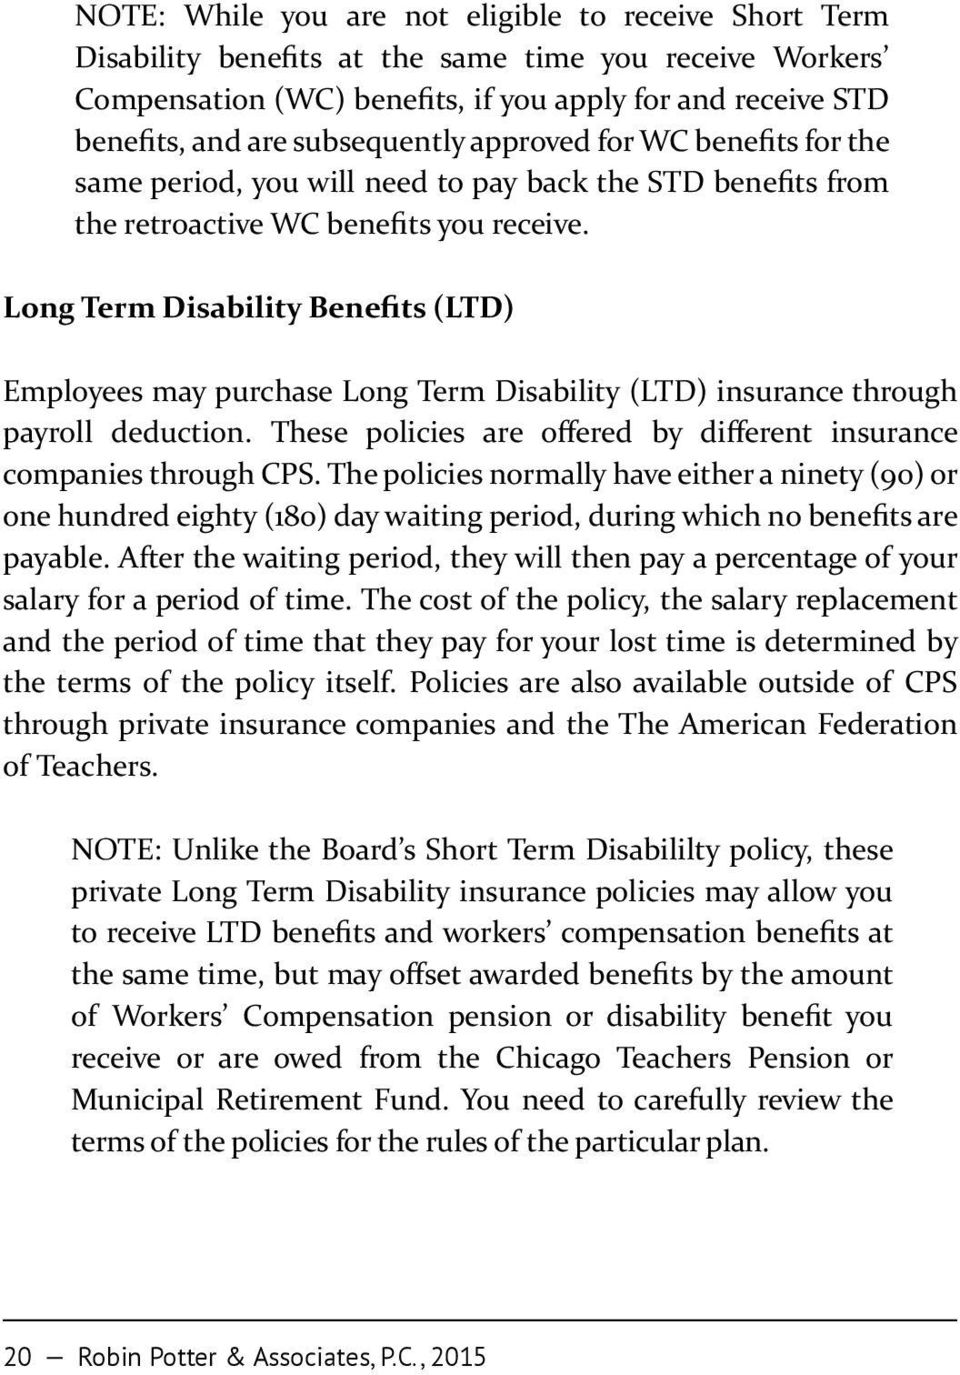 Long Term Disability Benefits (LTD) Employees may purchase Long Term Disability (LTD) insurance through payroll deduction. These policies are offered by different insurance companies through CPS.